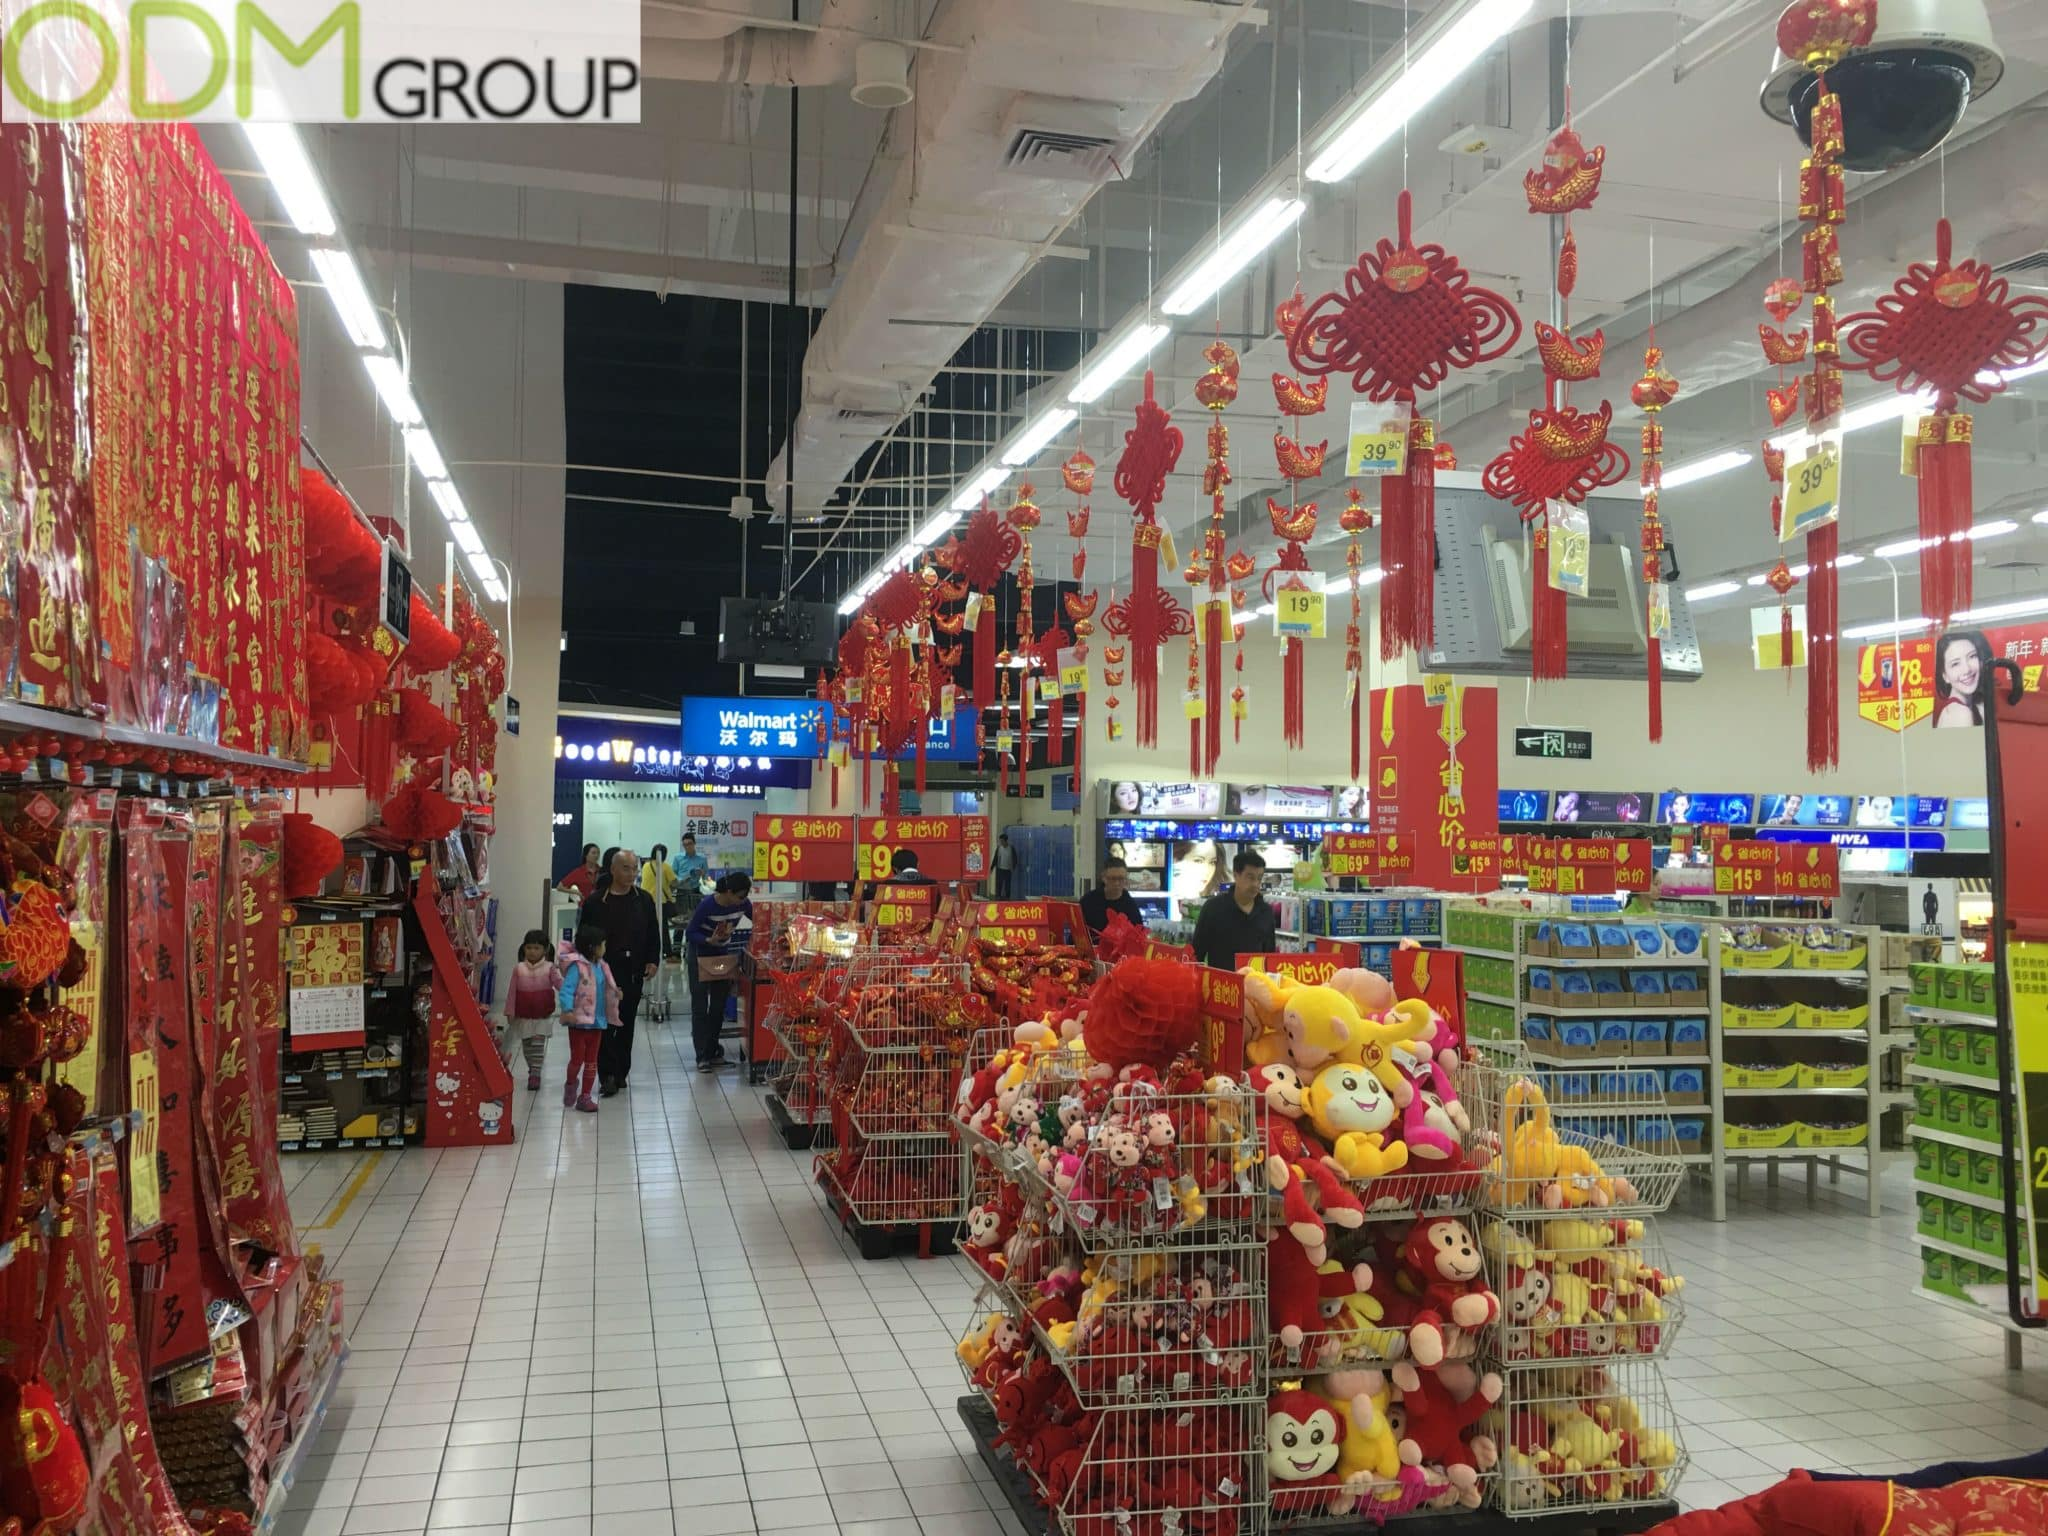 In Store Display by Walmart: Chinese New Year